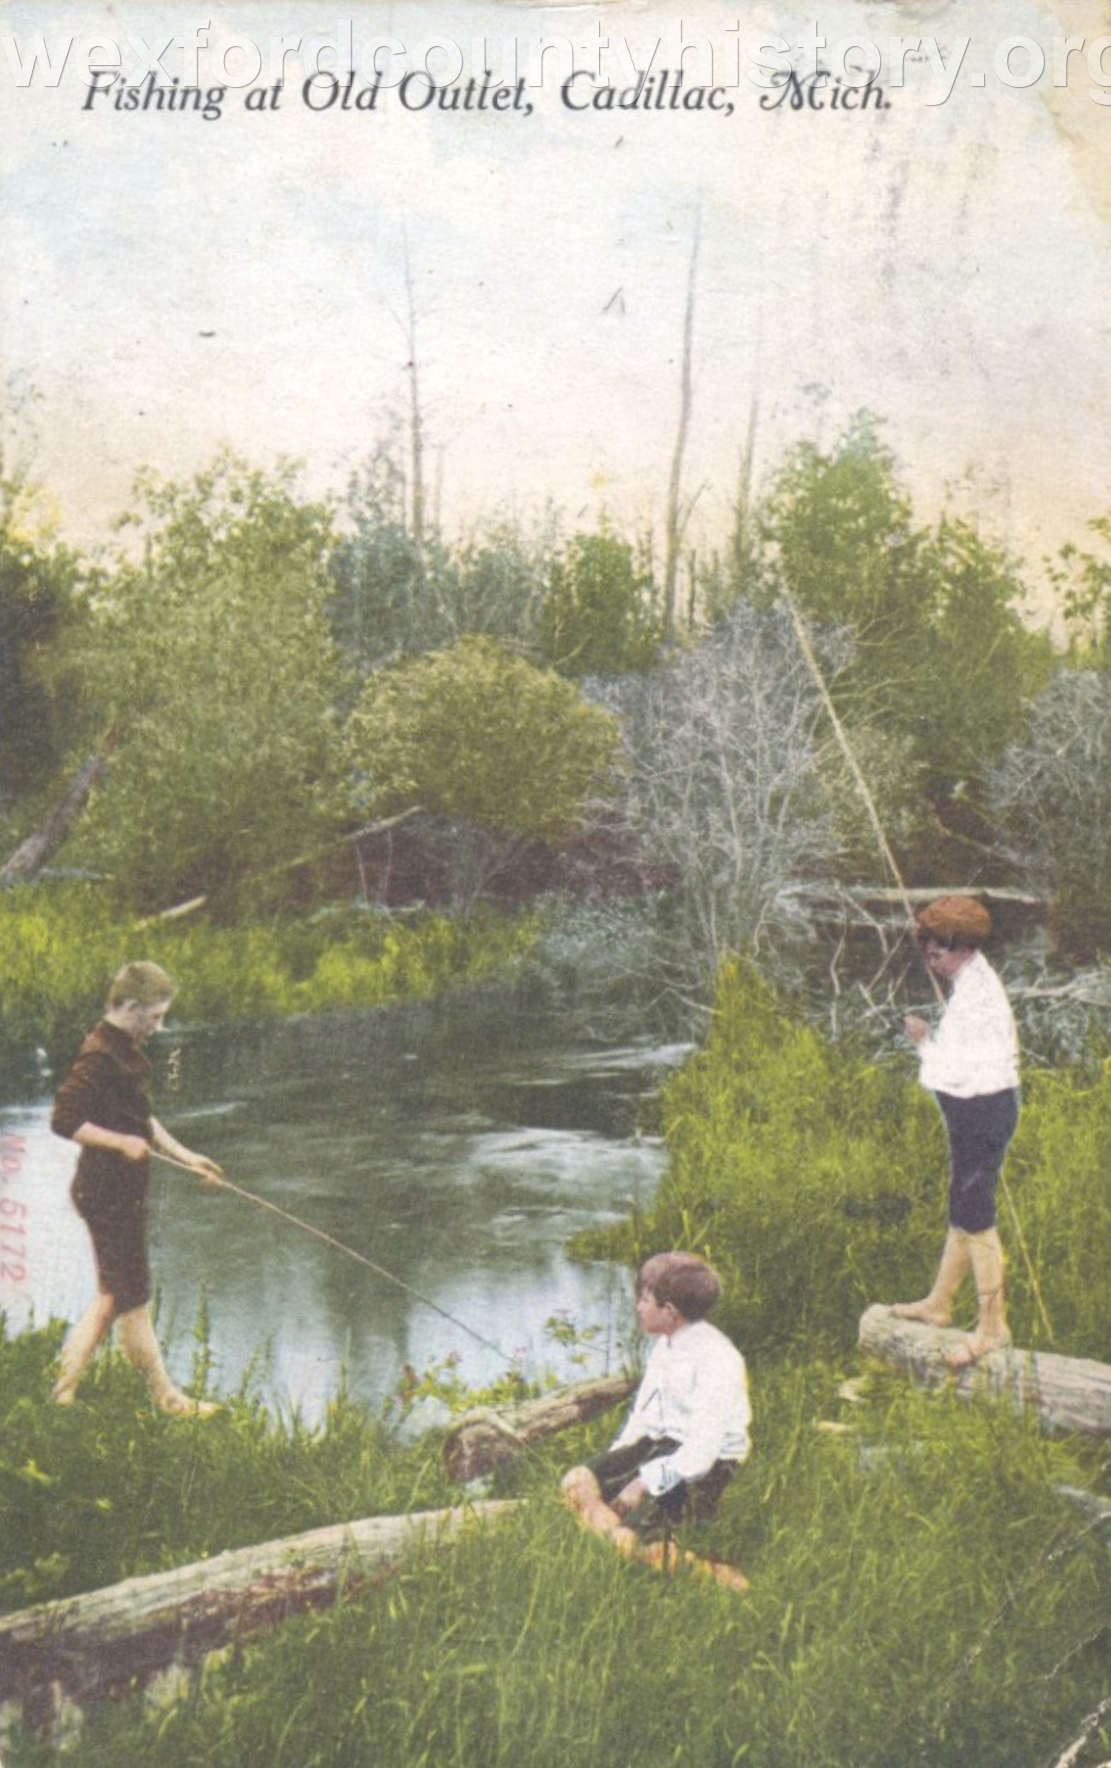 Cadillac-Recreation-Fishing-At-Old-Outlet